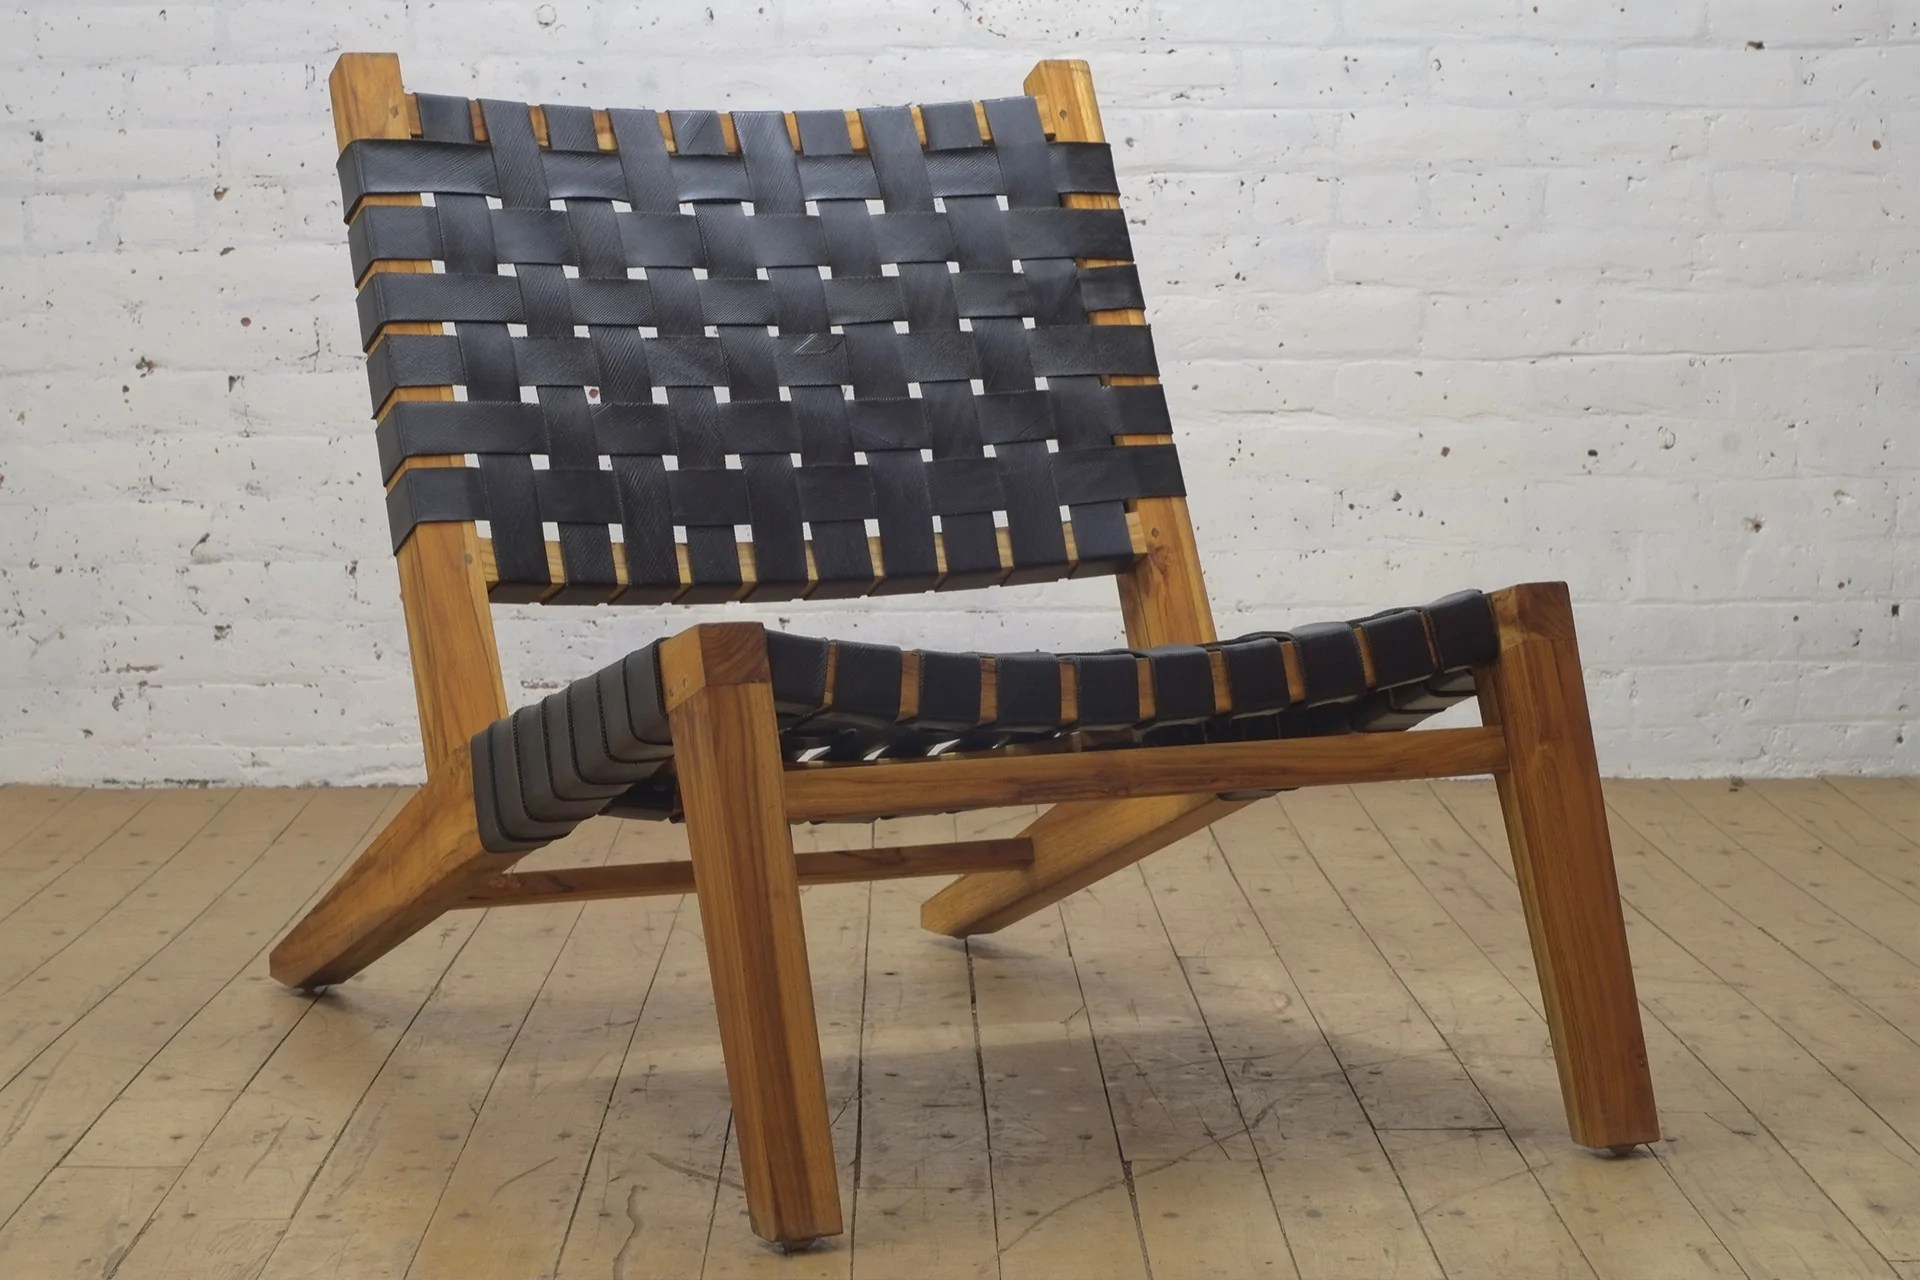 Grasshopper Lounge Chair Rubber  from the source